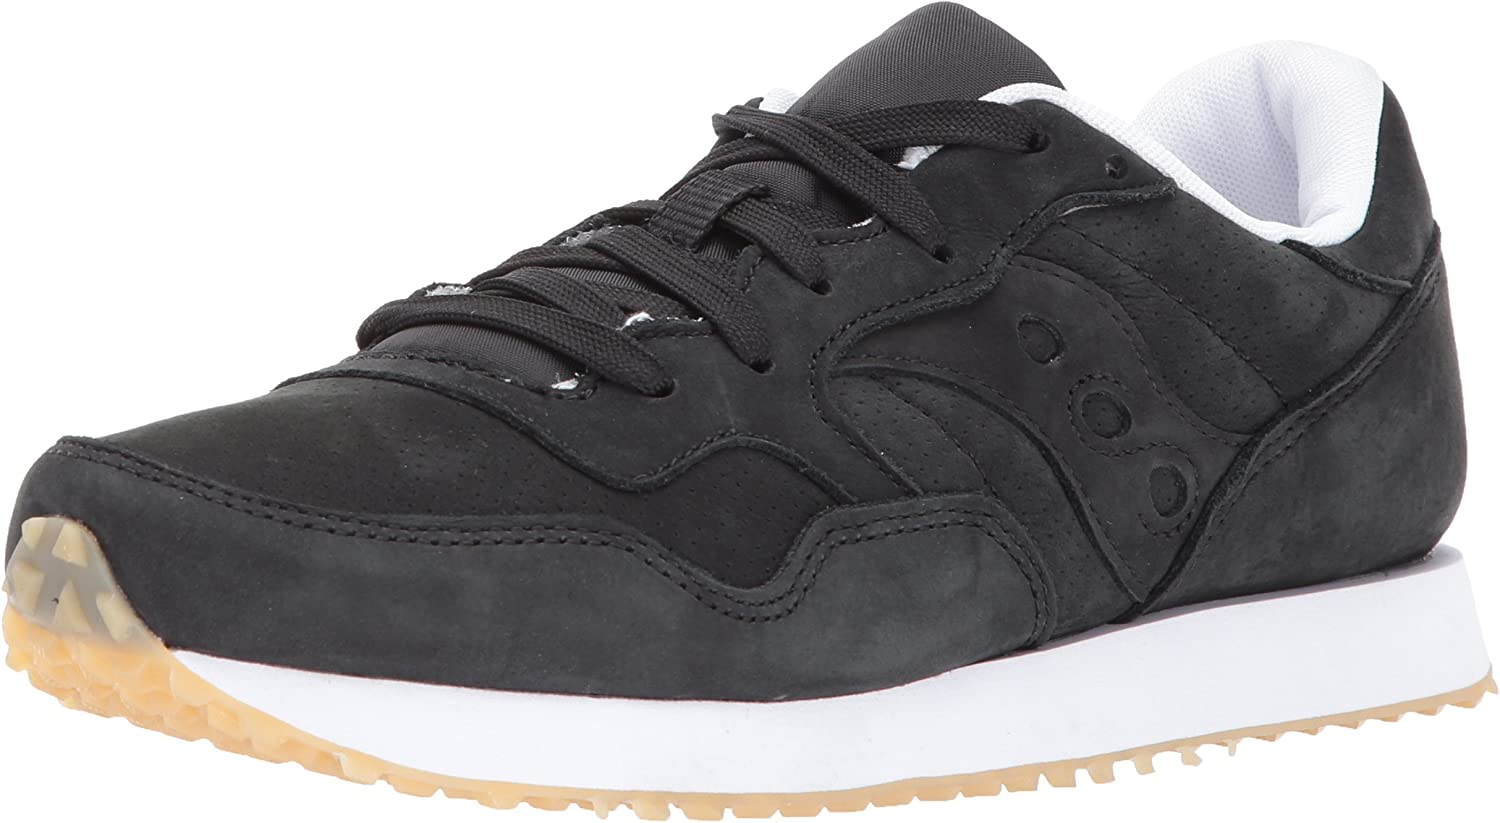 Saucony Womens DXN Trainer CL Sneakers